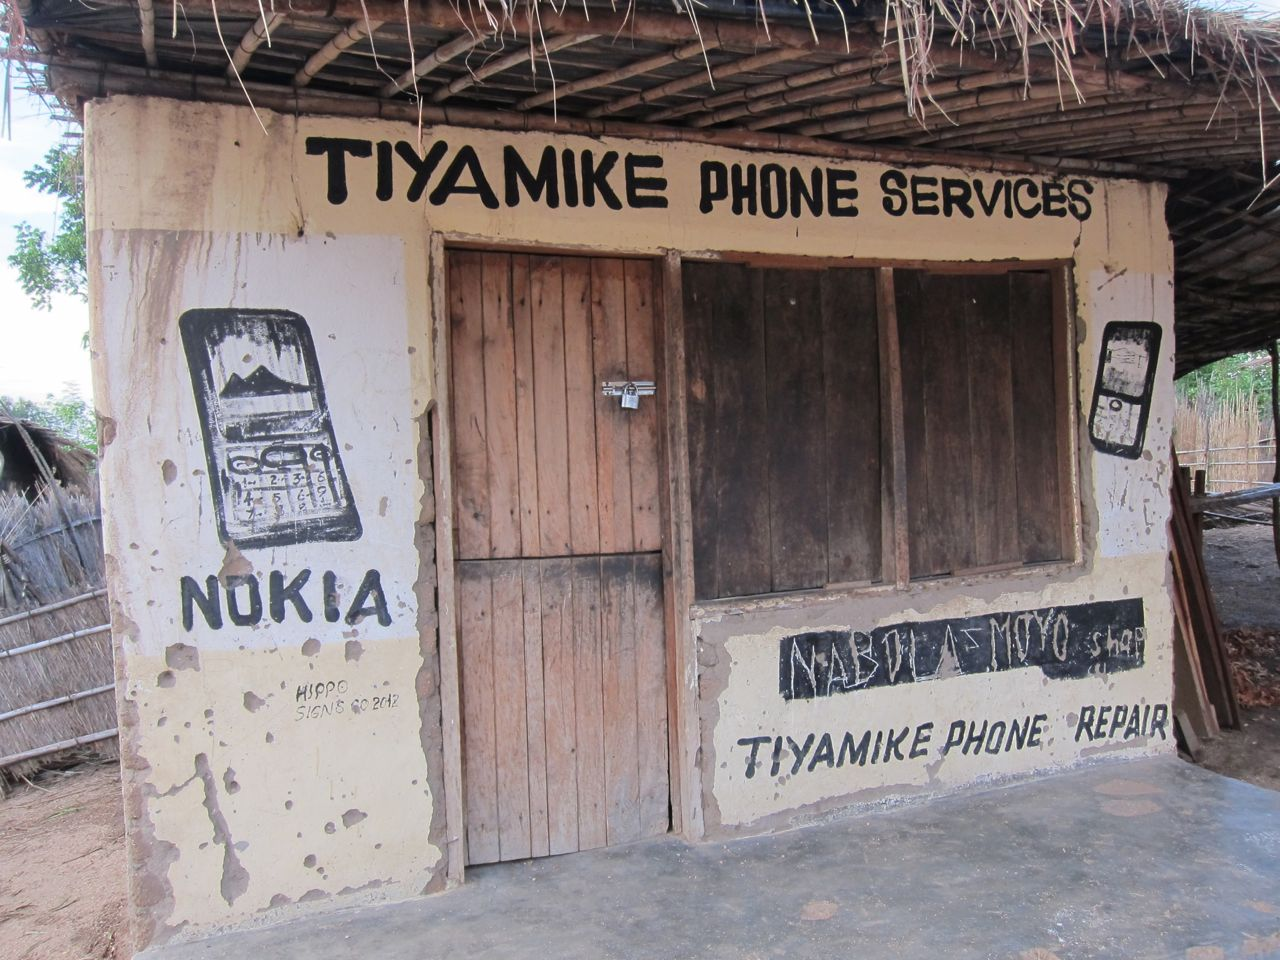 Phone services